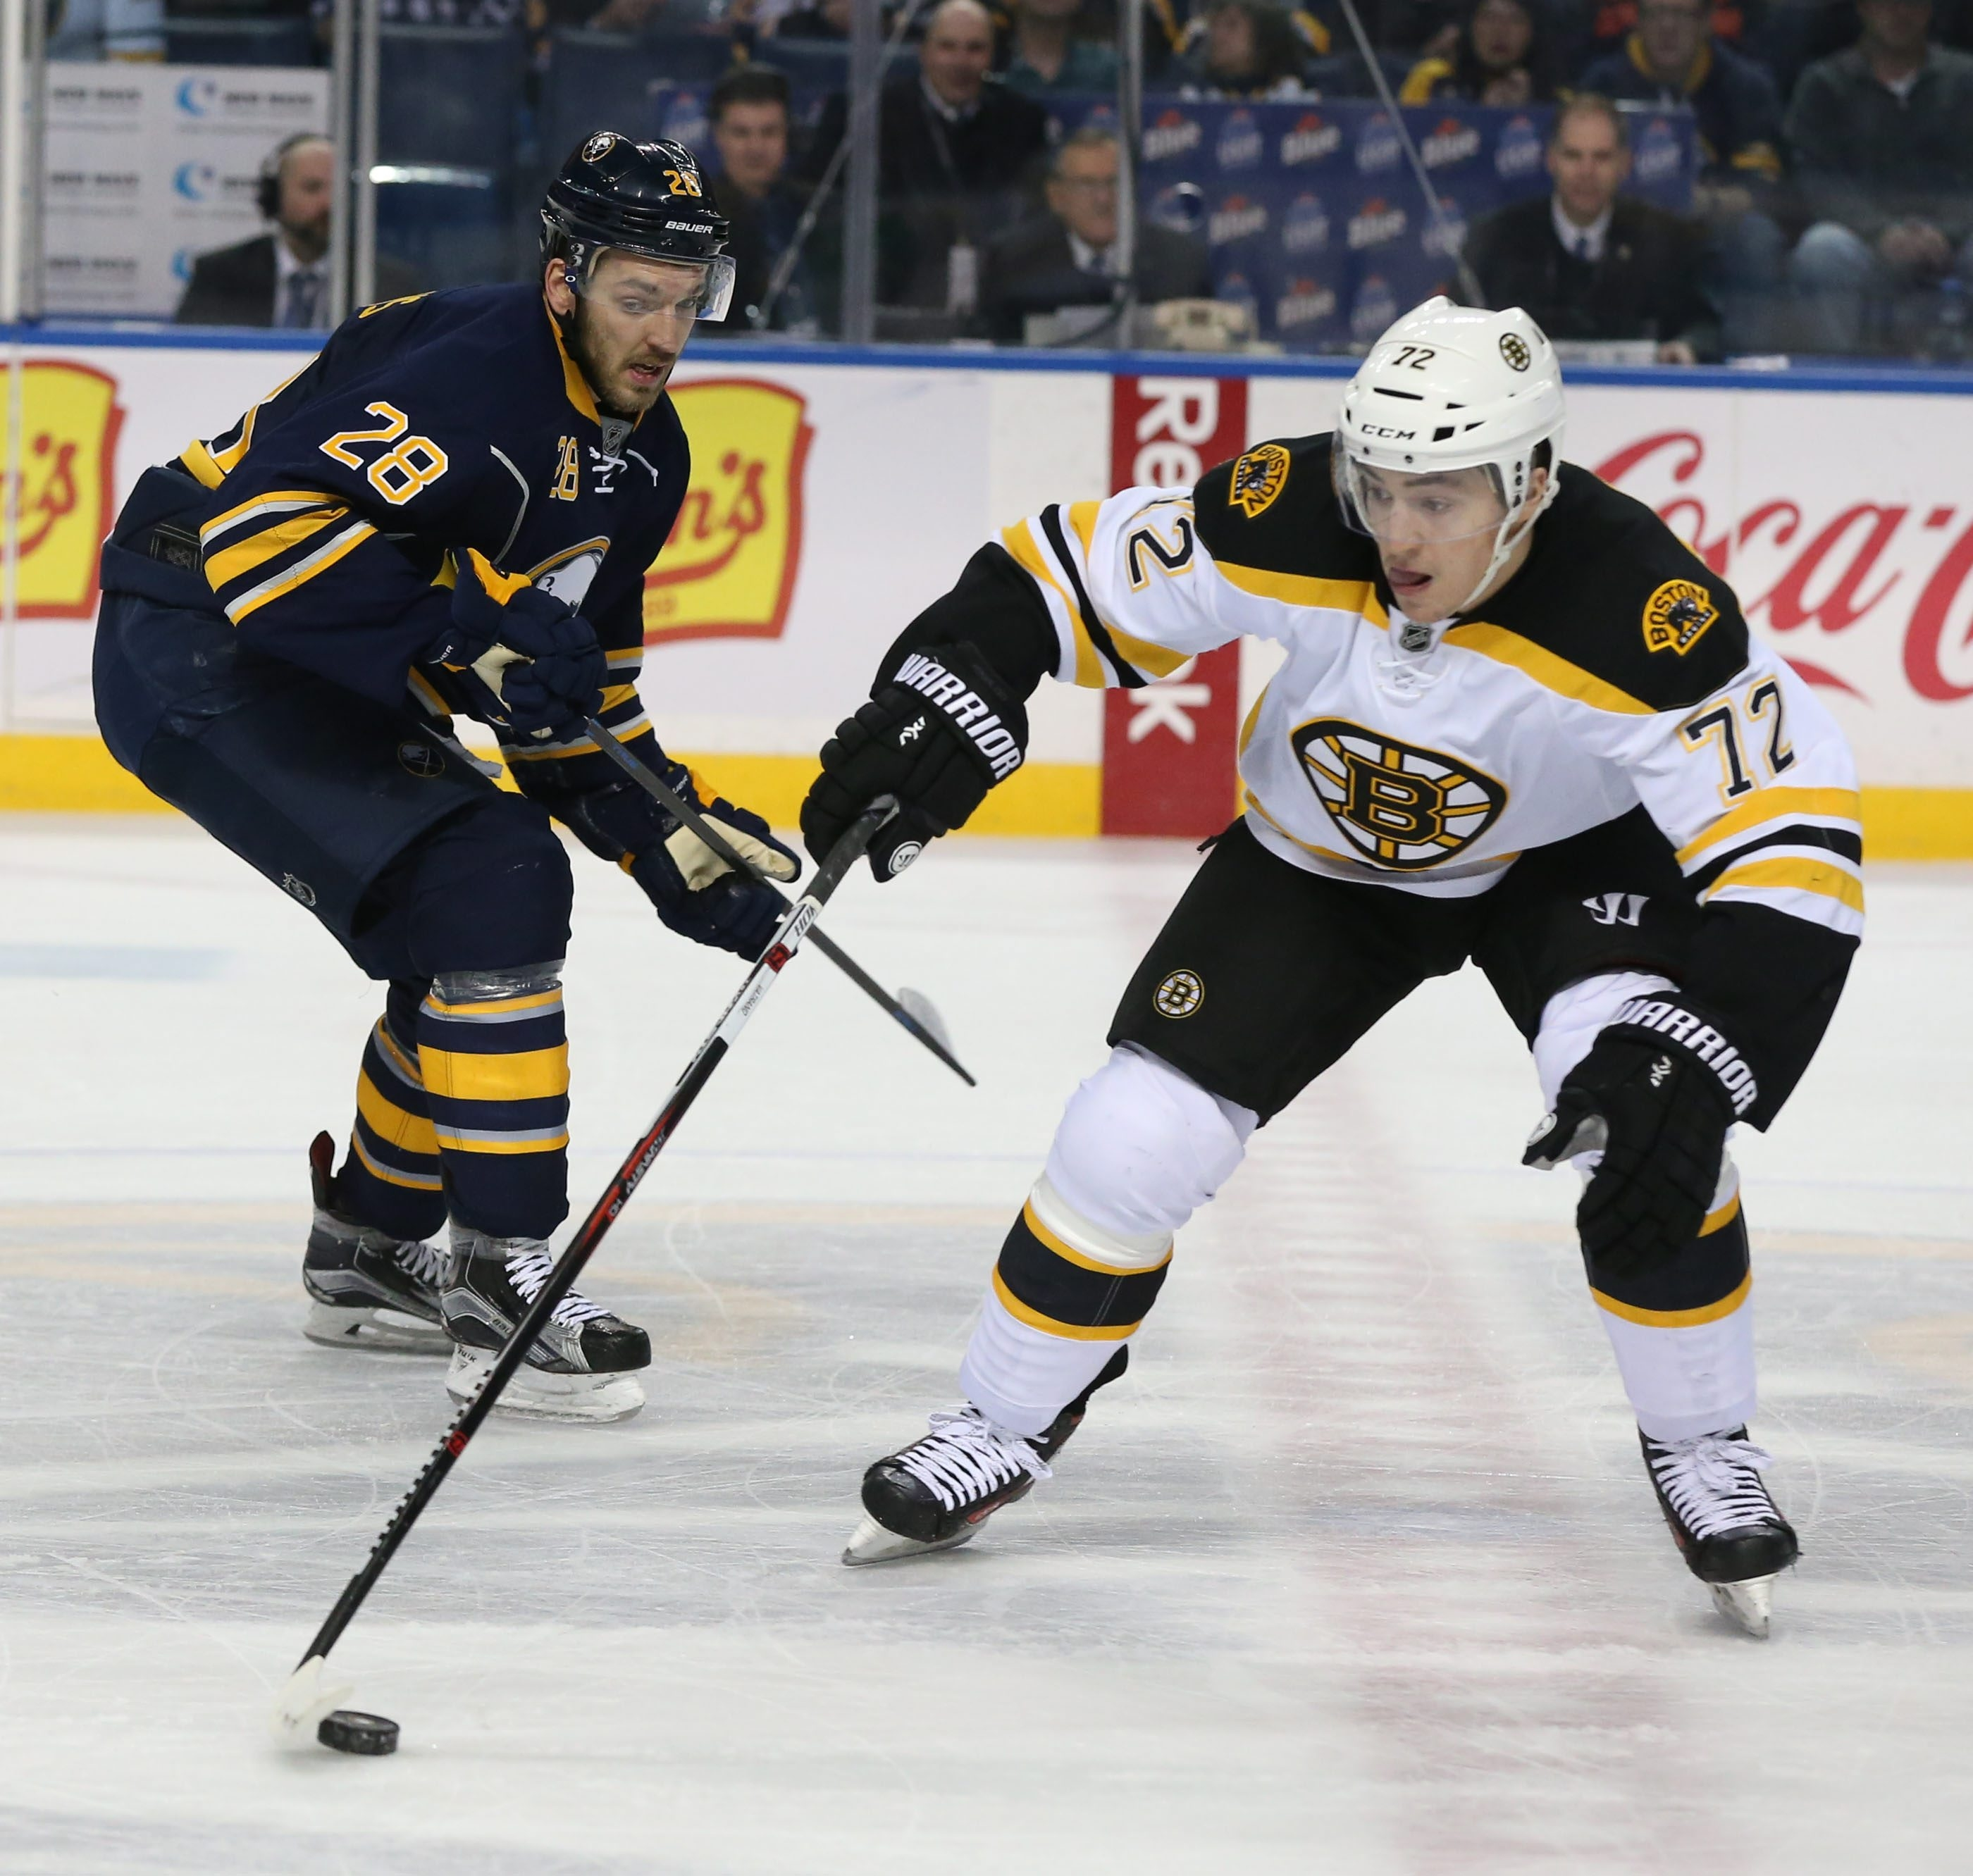 Buffalo Sabres center Zemgus Girgensons (28) battles Boston Bruins center Frank Vatrano (72) for the puck in the first period at First Niagara Center in Buffalo, NY on Friday, Jan. 15, 2016.  (James P. McCoy/ Buffalo News)